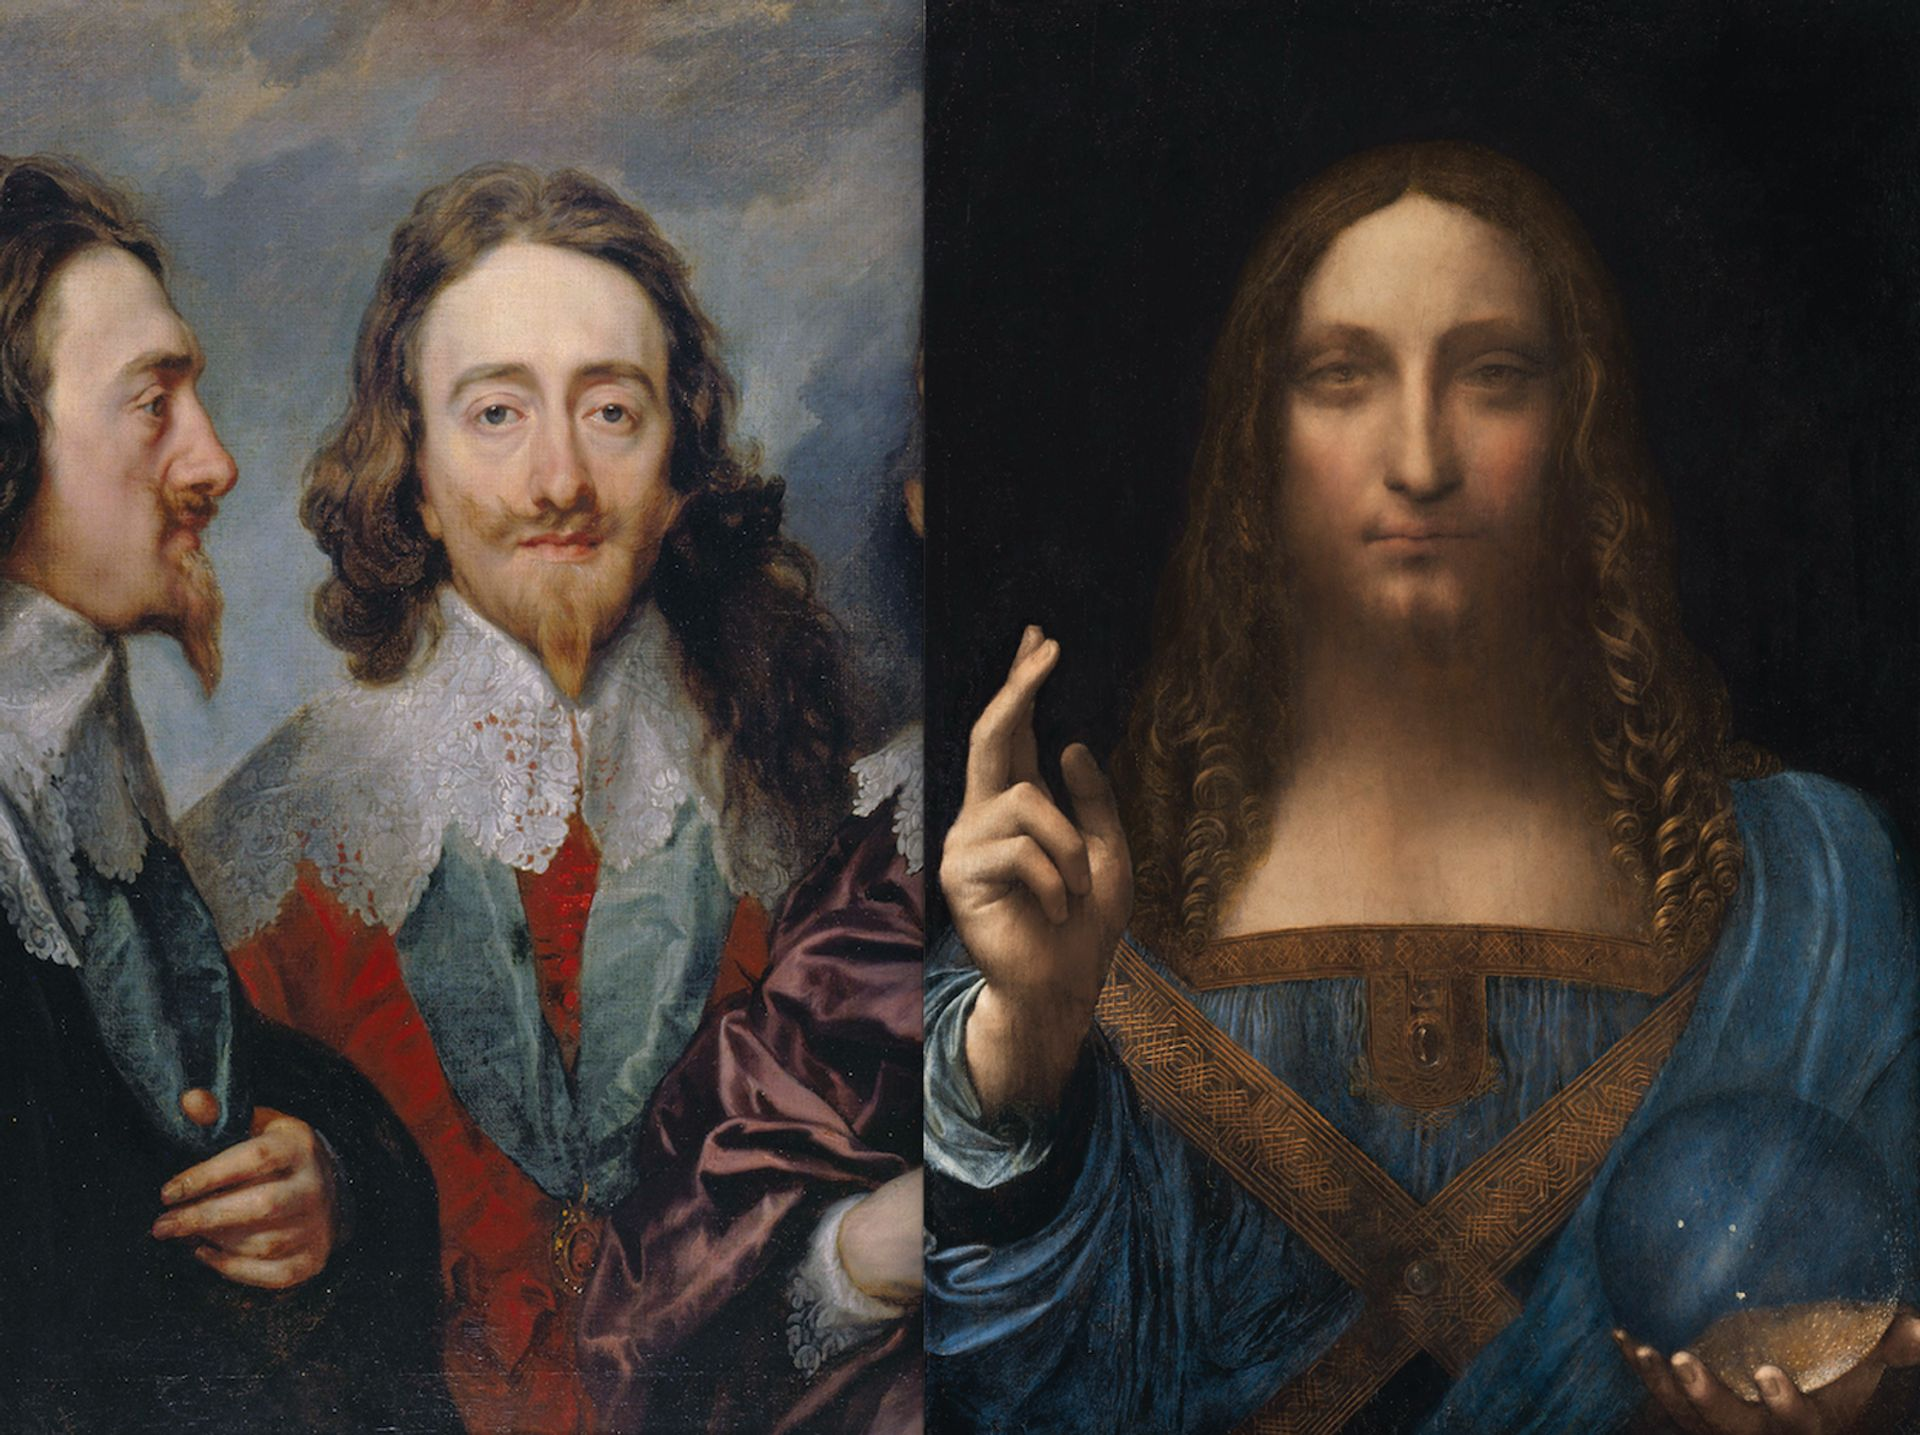 Detail of Anthony van Dyck's Charles I (1635-36) and Leonardo's Salvator Mundi (around 1500) was sold for £45 at Sotheby's London in 1958. Photo: © Christie's Images, 2017 Charles: Royal Collection Trust / © Her Majesty Queen Elizabeth II 2017. Salvator Mundi: Christie's Images, 2017